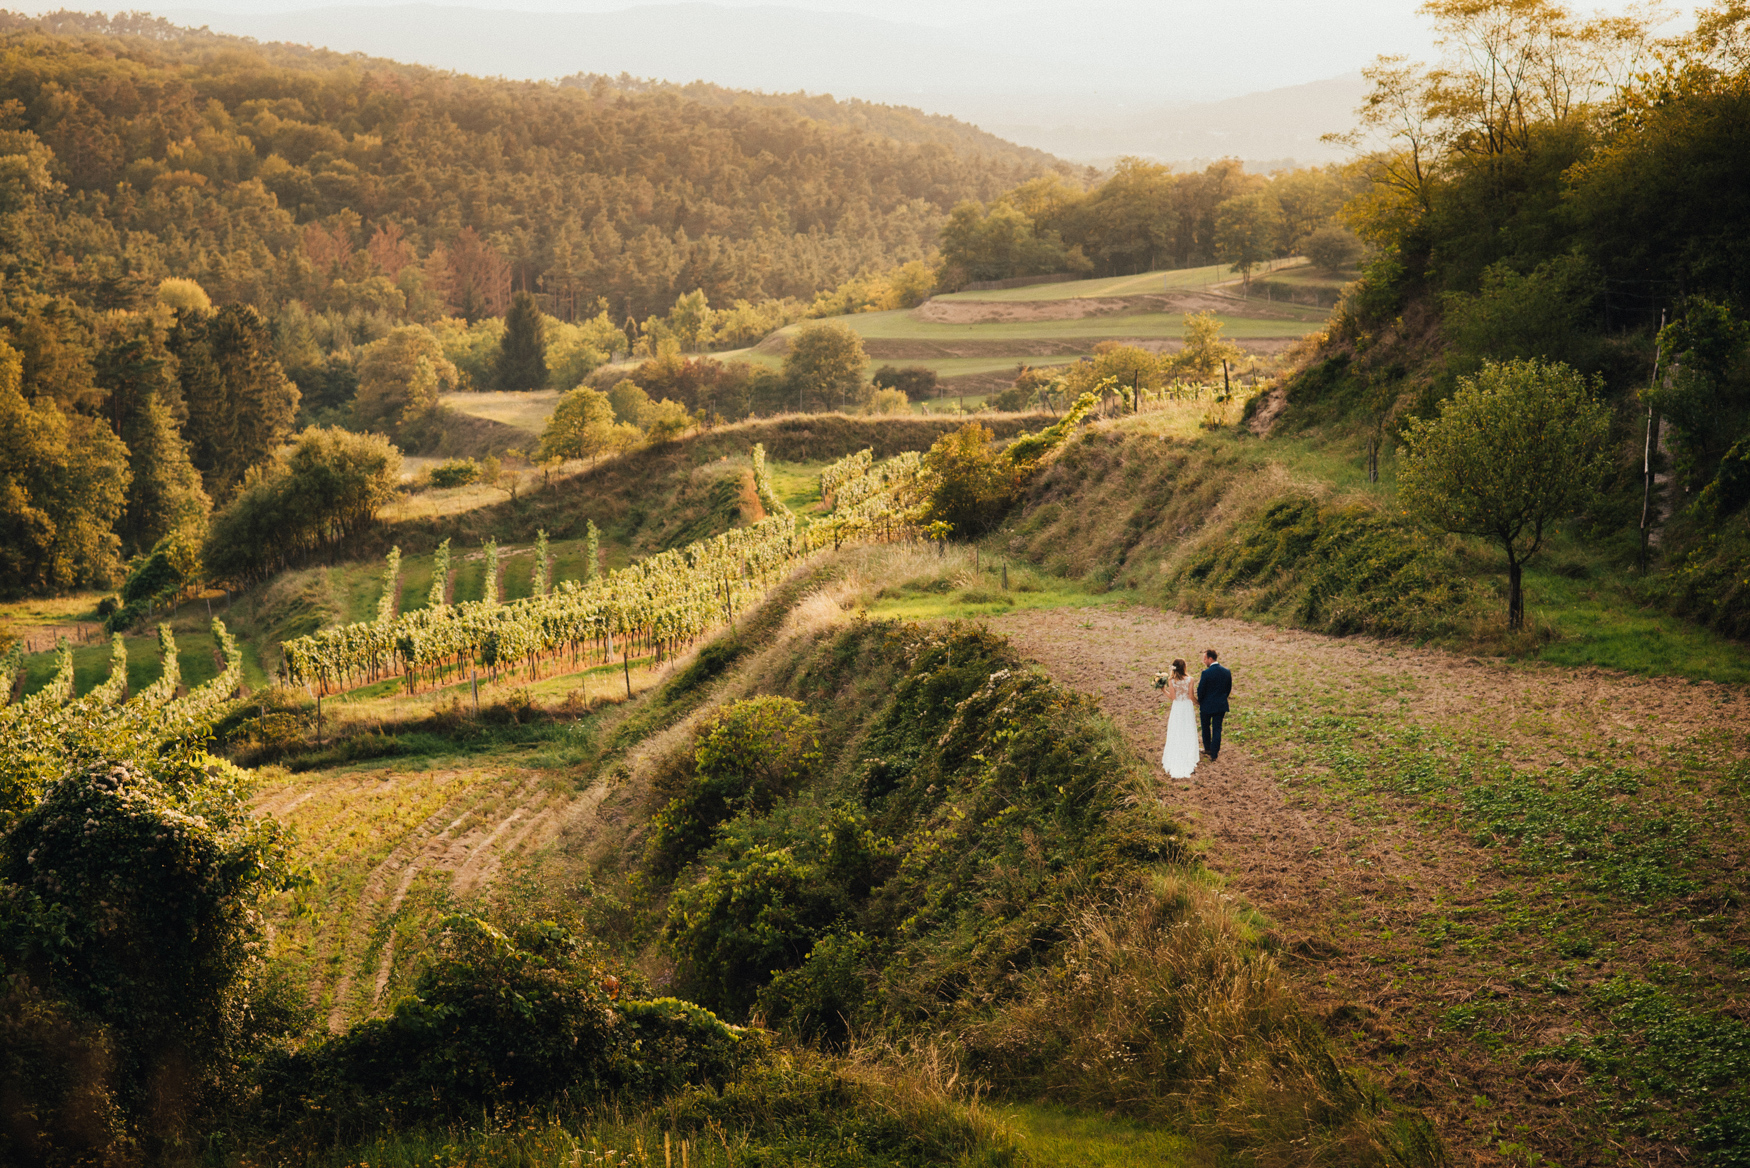 bestof2017_107 austrian outdoor wedding near vineyards.jpg